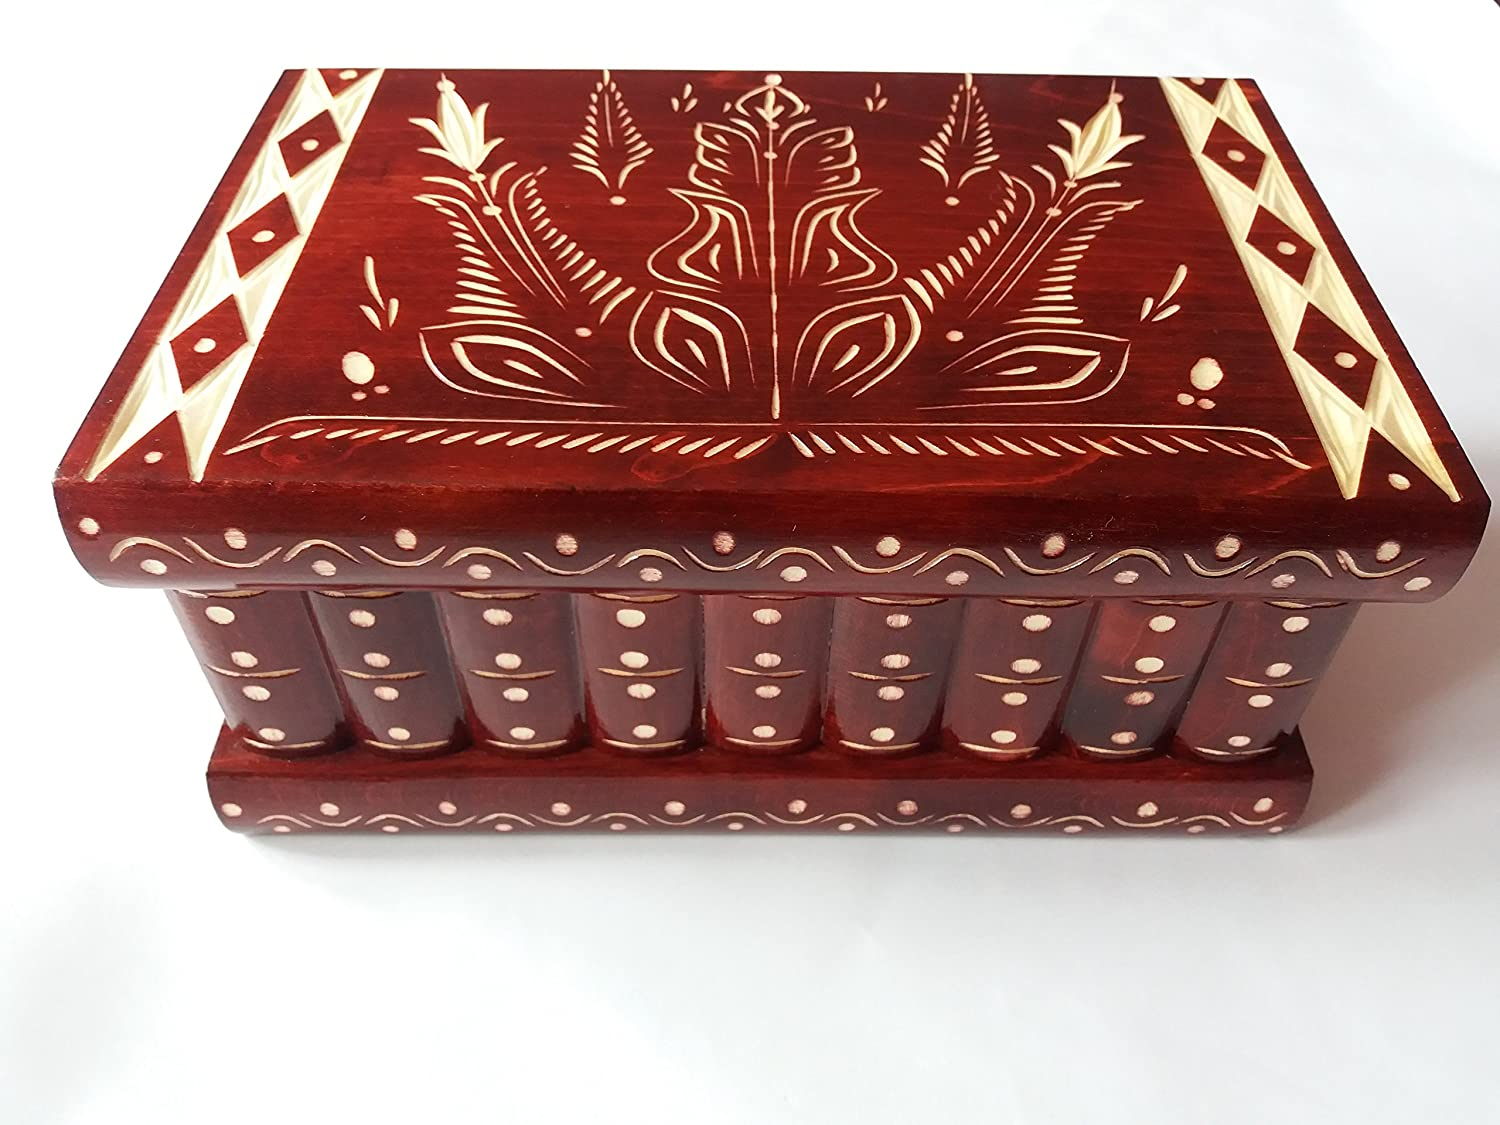 Huge puzzle box magic jewelry box premium treasure gift new very big box red handmade mystery case carved wooden storage brain teaser